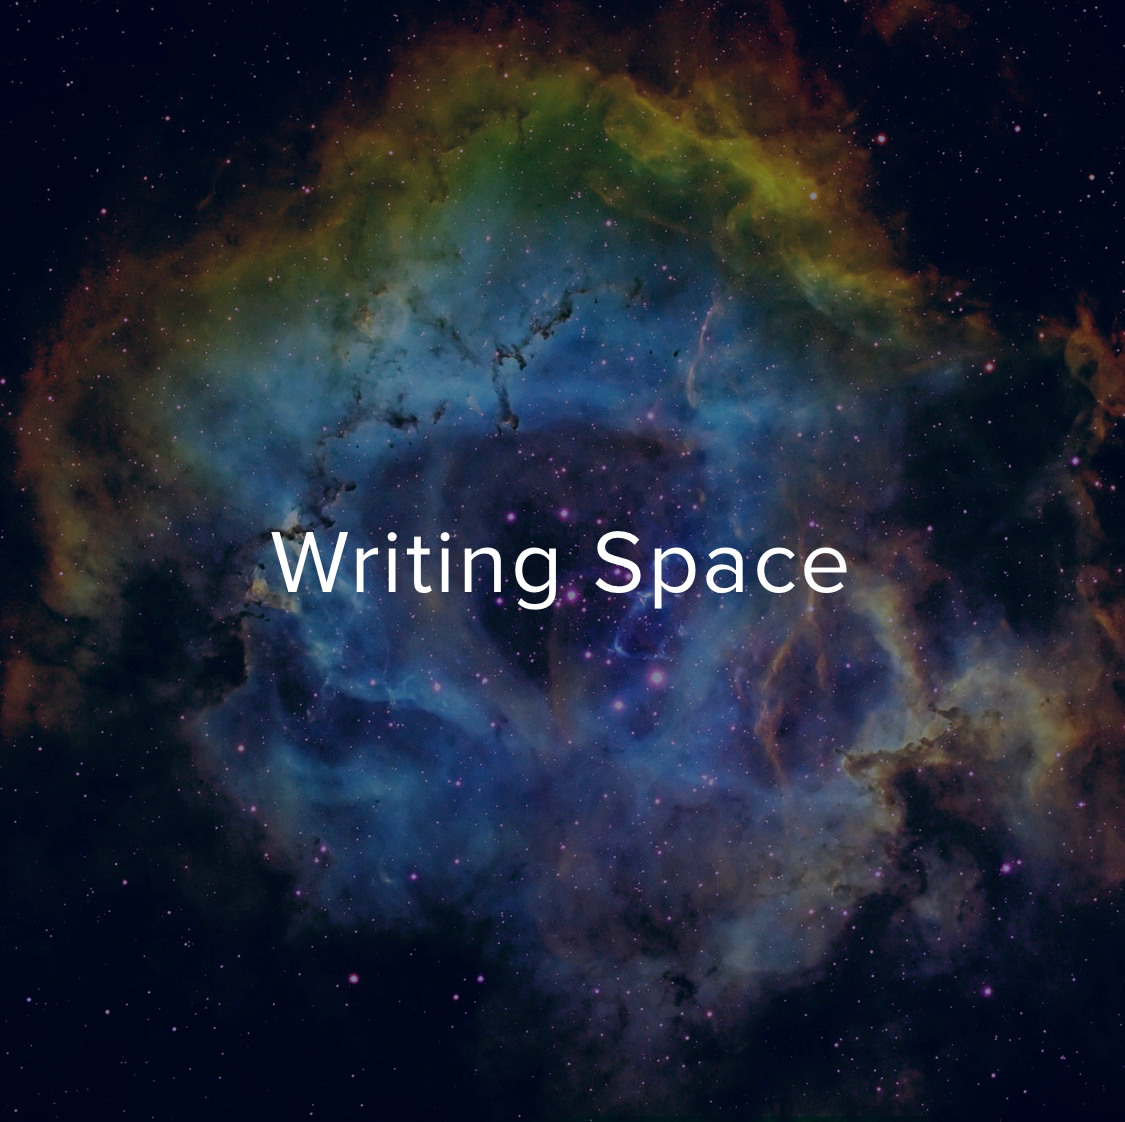 Image Credit: Scribe's wanderingmind.space homepage design Year 43 [ it's now year 45. I mark time by how old I am - more relatable ]